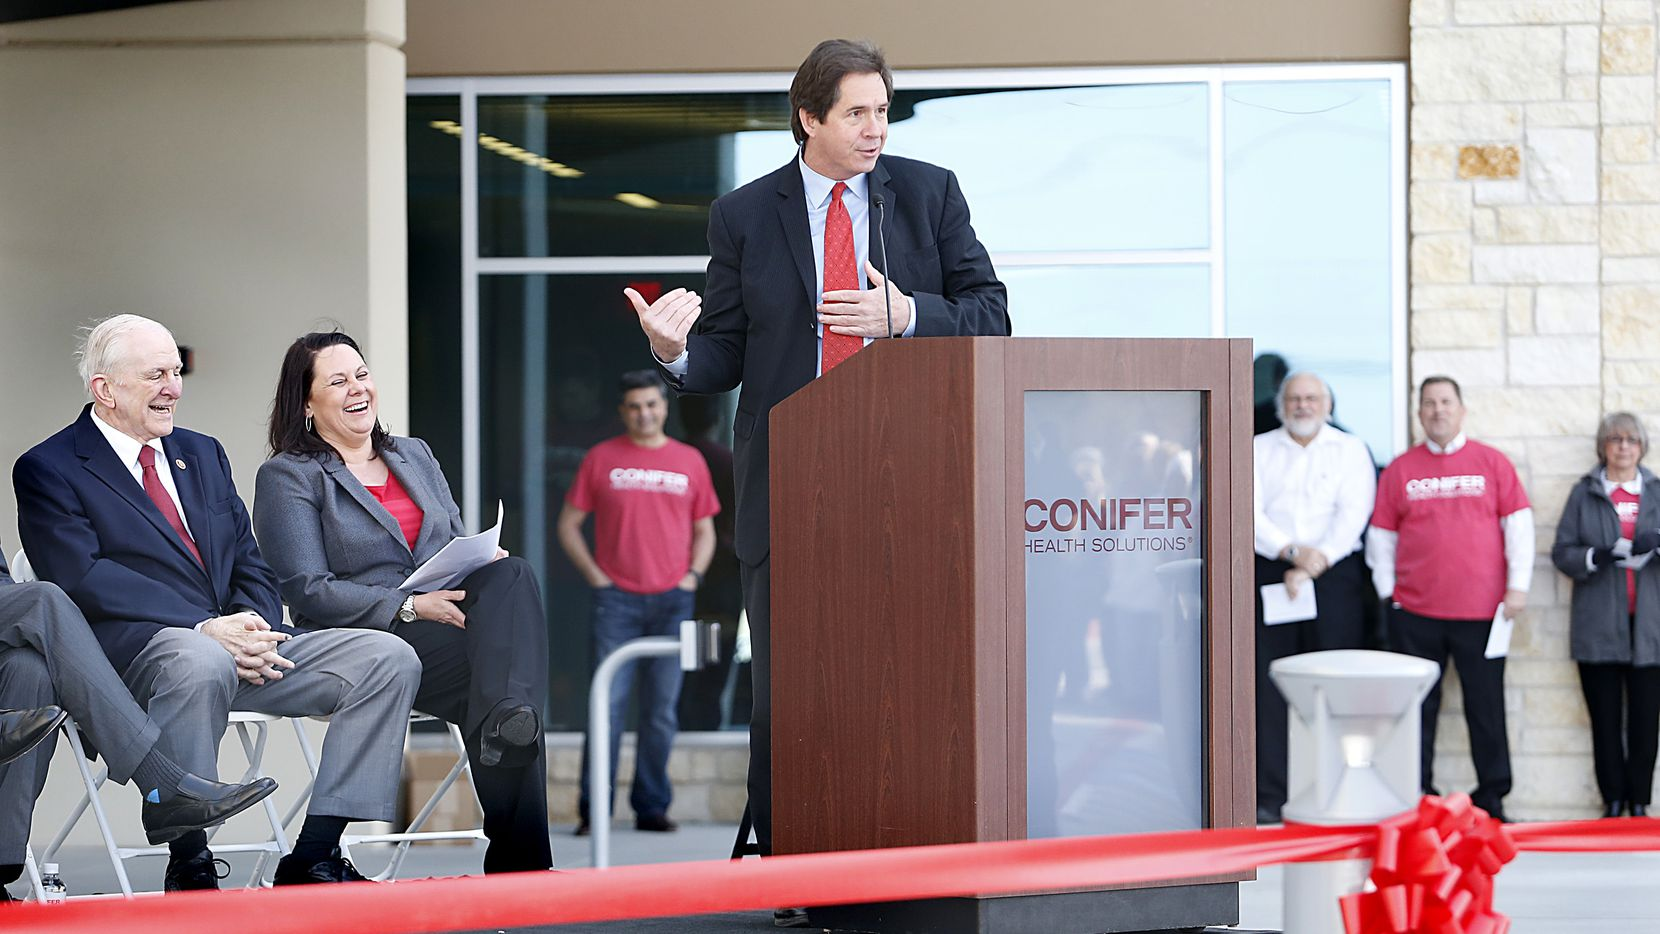 Tony Felker (center), president of the Frisco Chamber of Commerce speaks during a ribbon cutting ceremony for Conifer Health Solutions new building in Frisco.